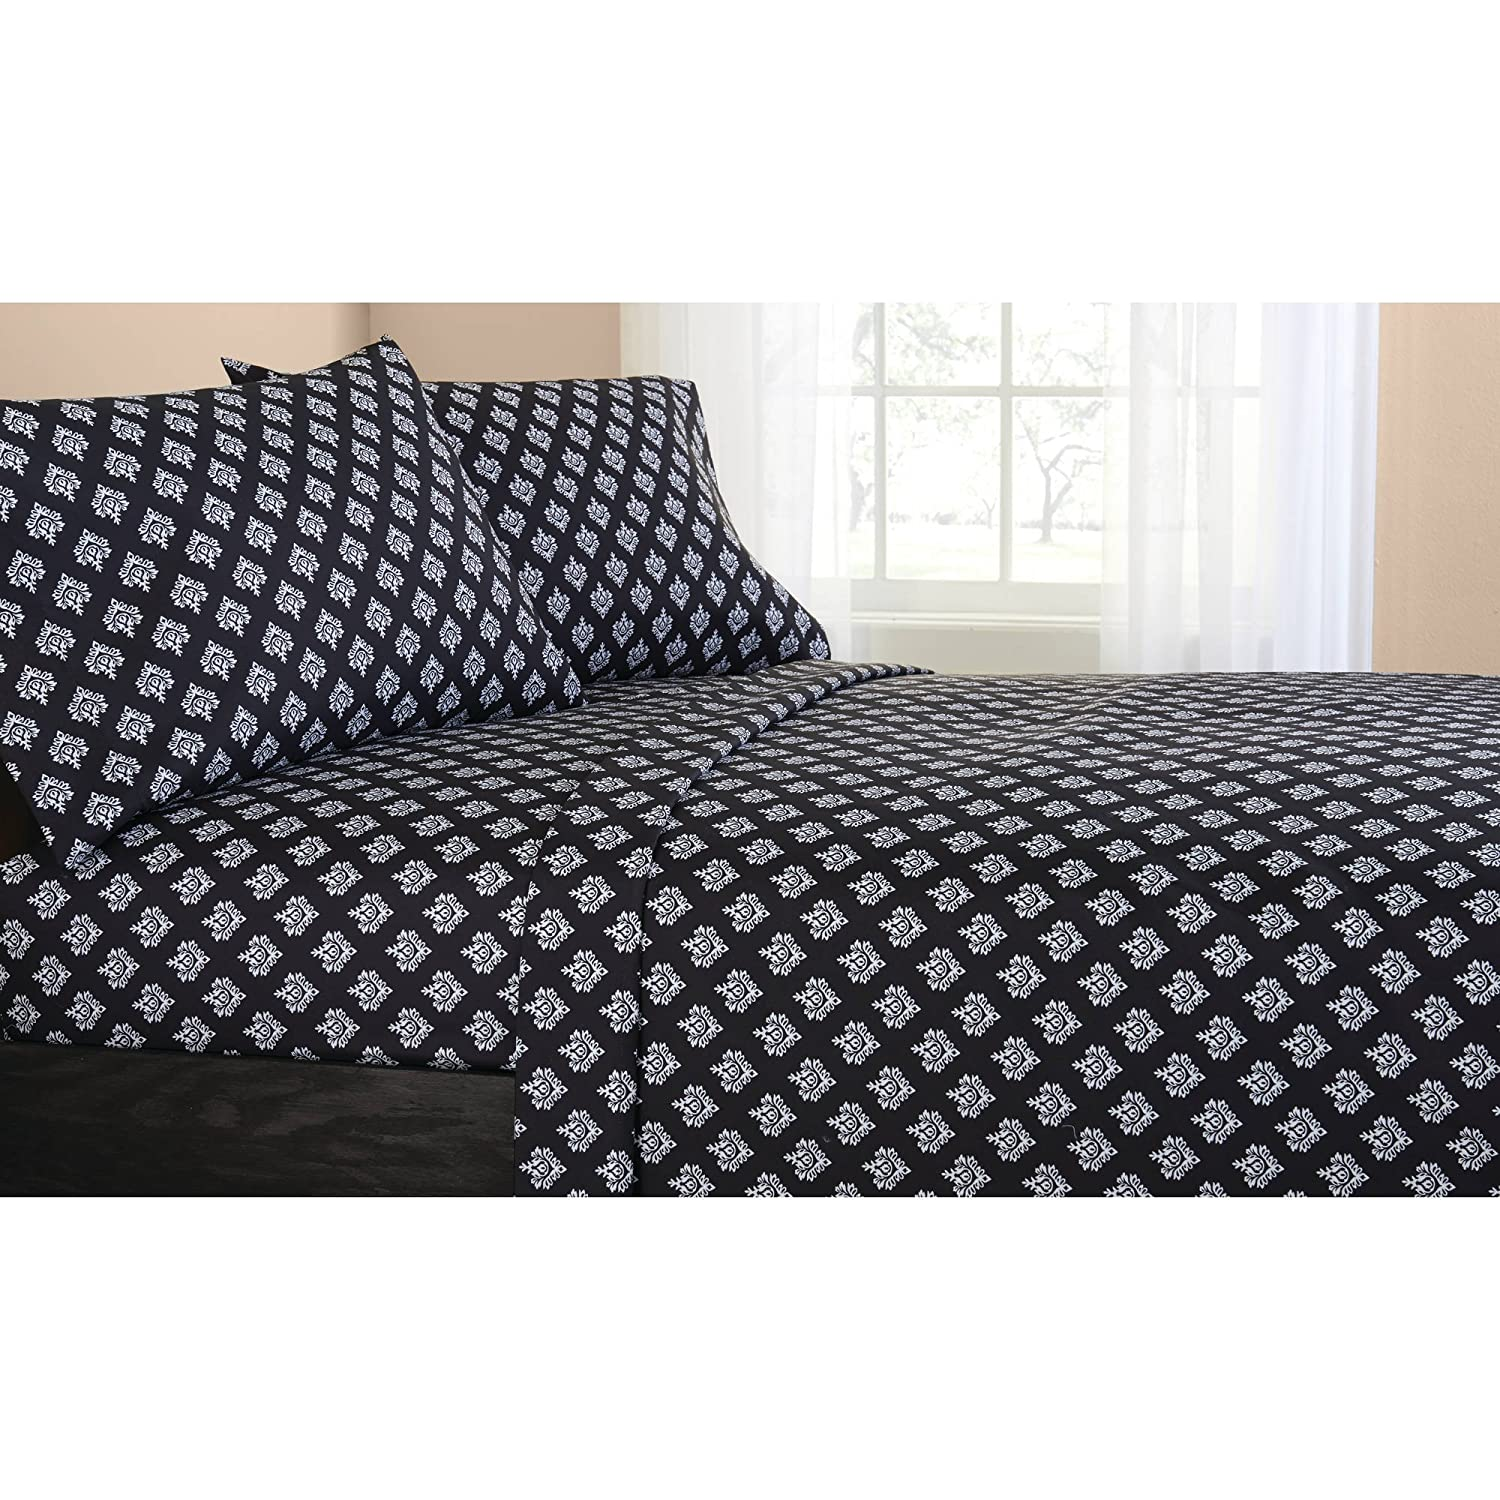 Mainstays Classic Noir Bed In A Bag Bedding Set, FULL